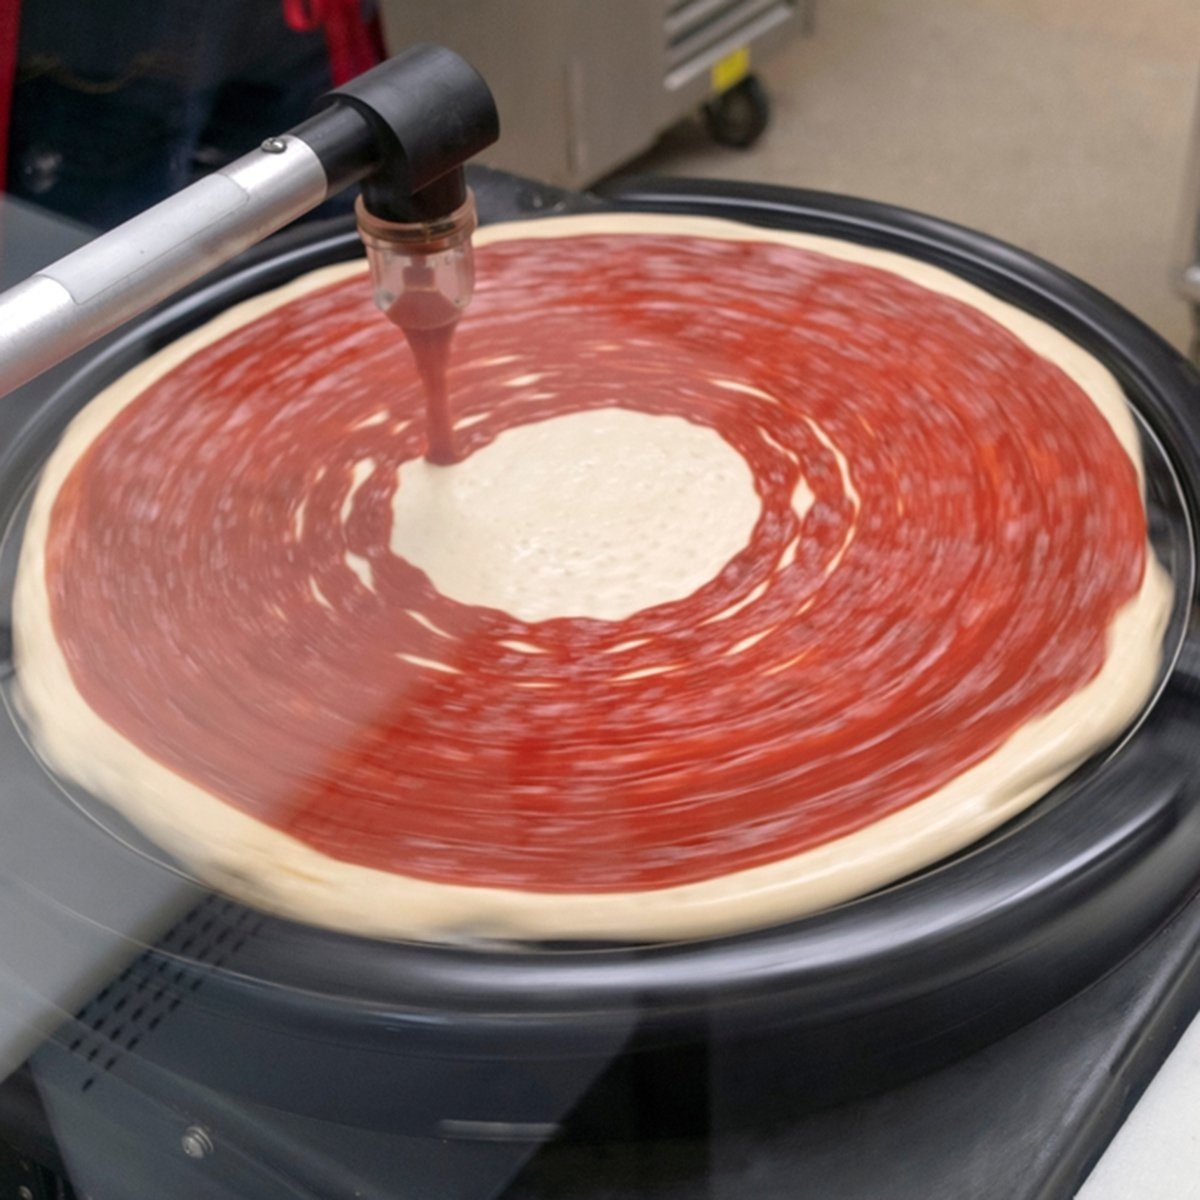 Automated pizza sauce delivery system with MOTION BLUR.; Shutterstock ID 1334030297; Job (TFH, TOH, RD, BNB, CWM, CM): TOH